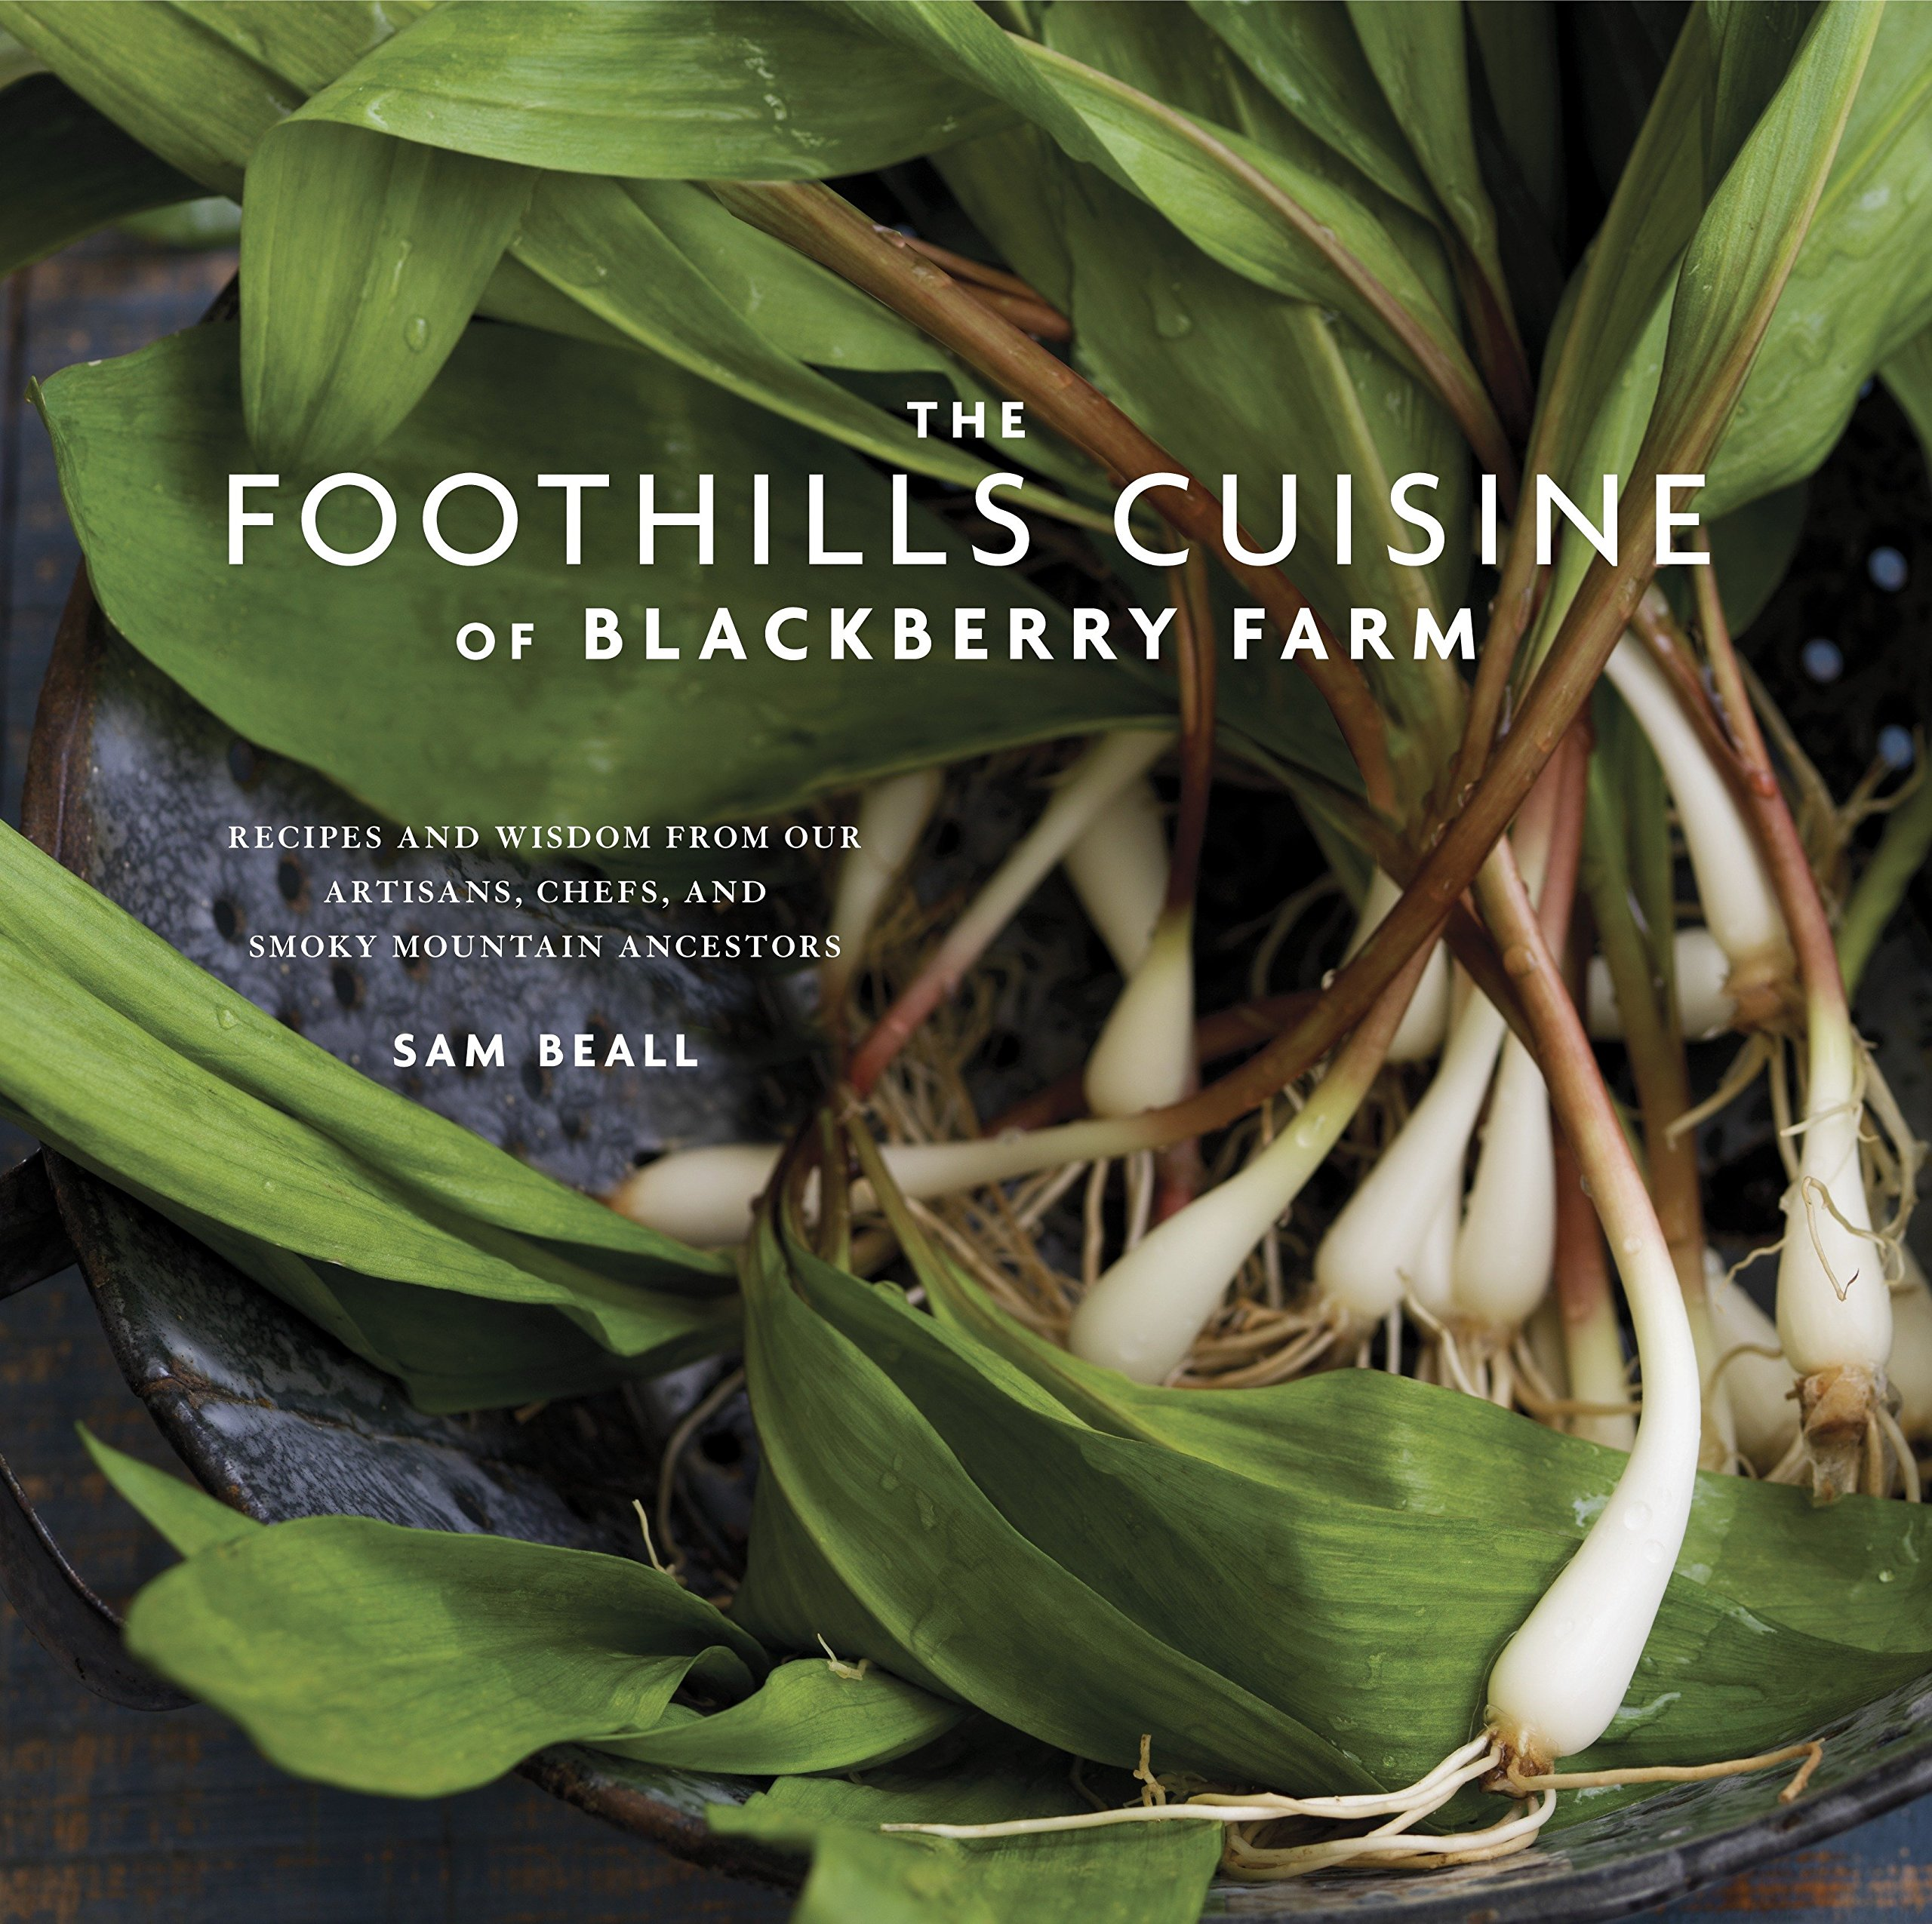 The Foothills Cuisine of Blackberry Farm: Recipes and Wisdom